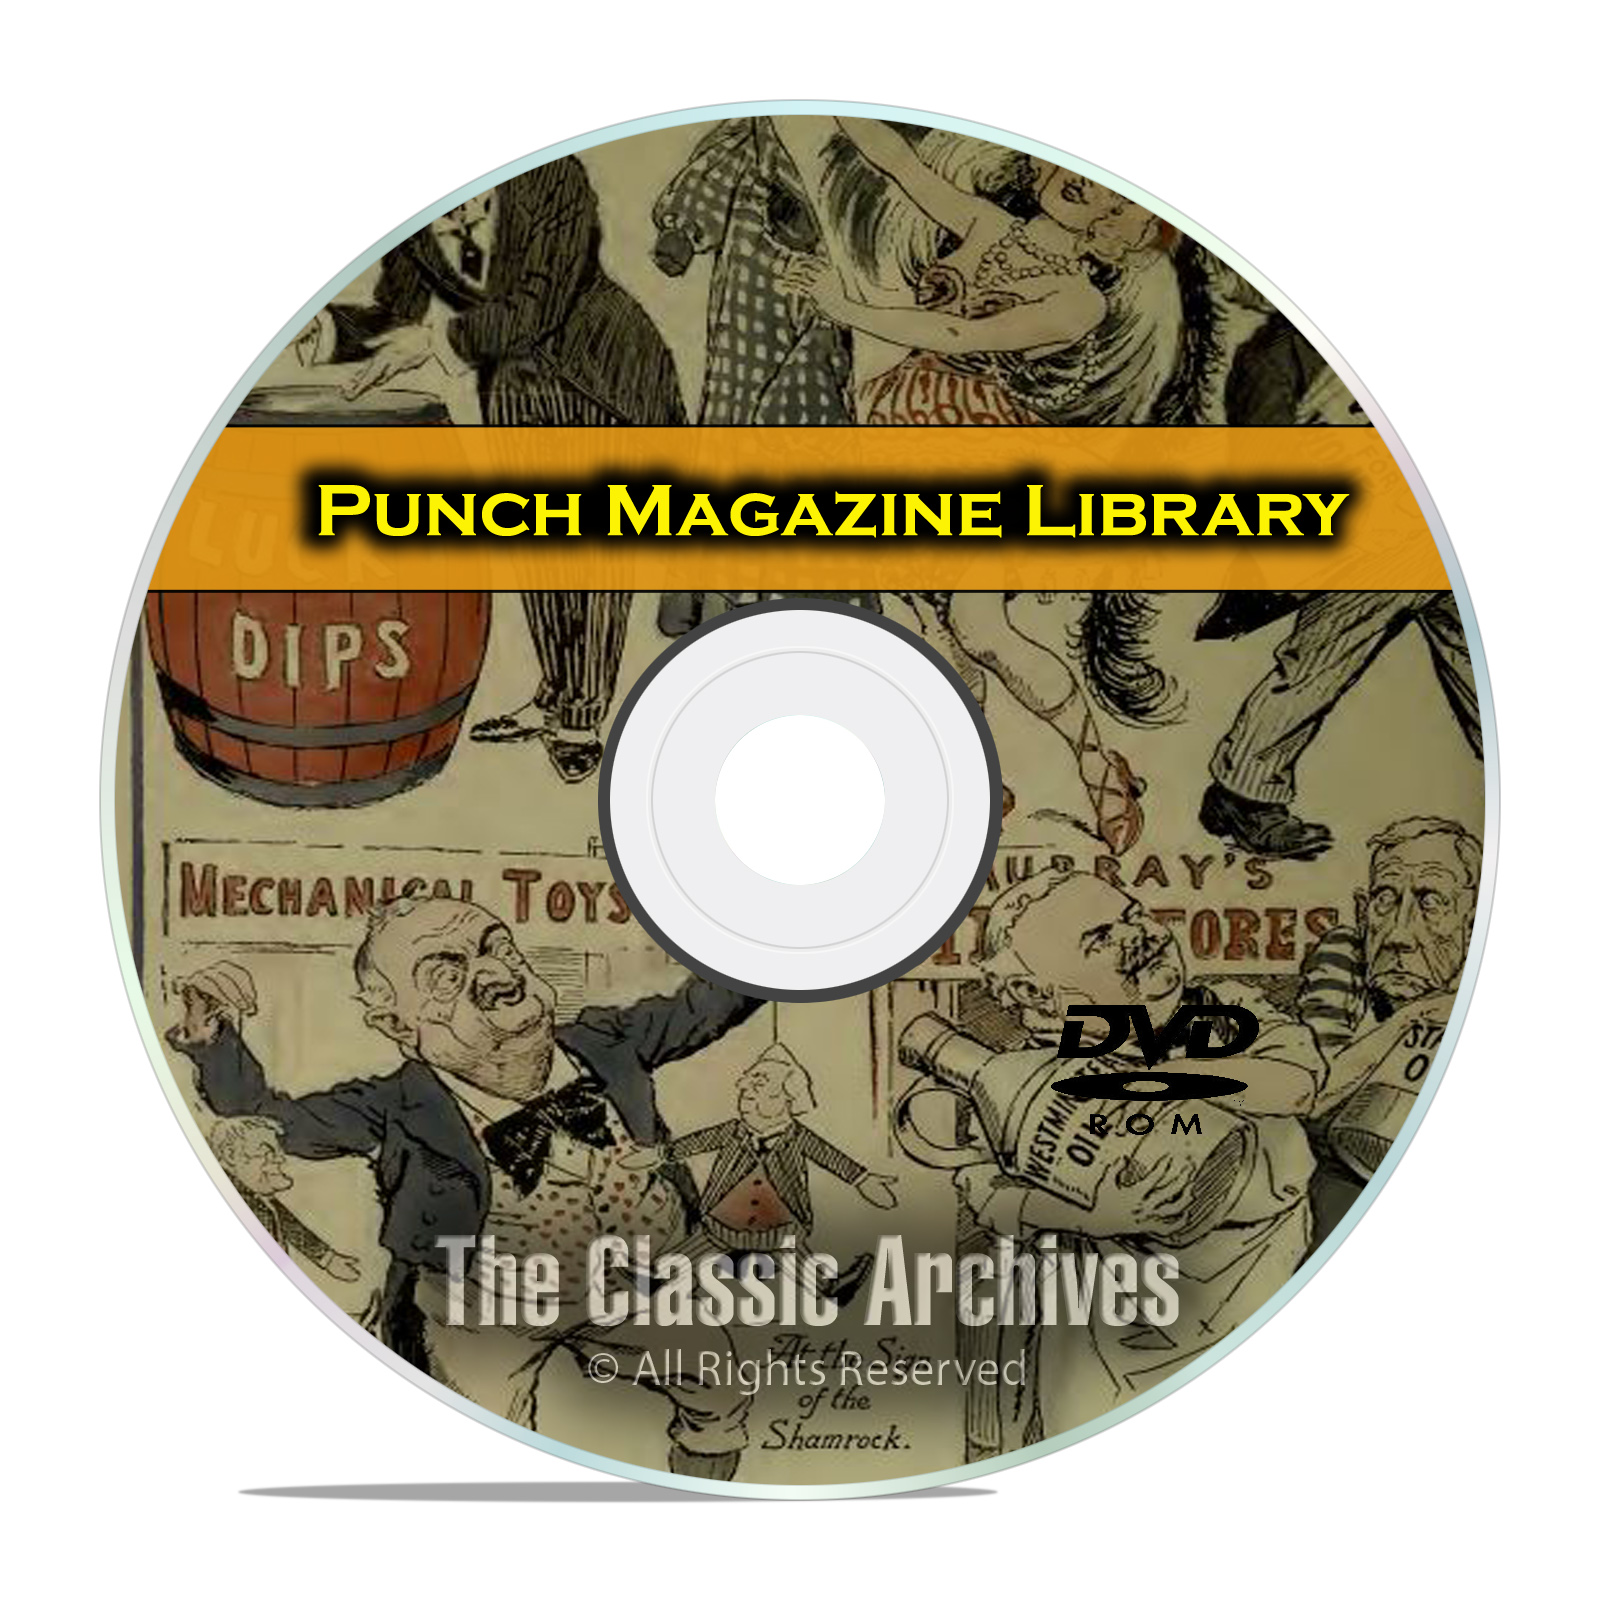 Punch Magazine, British Humor Comics Satire, 78 Volumes, 2028 Issues DVD - Click Image to Close